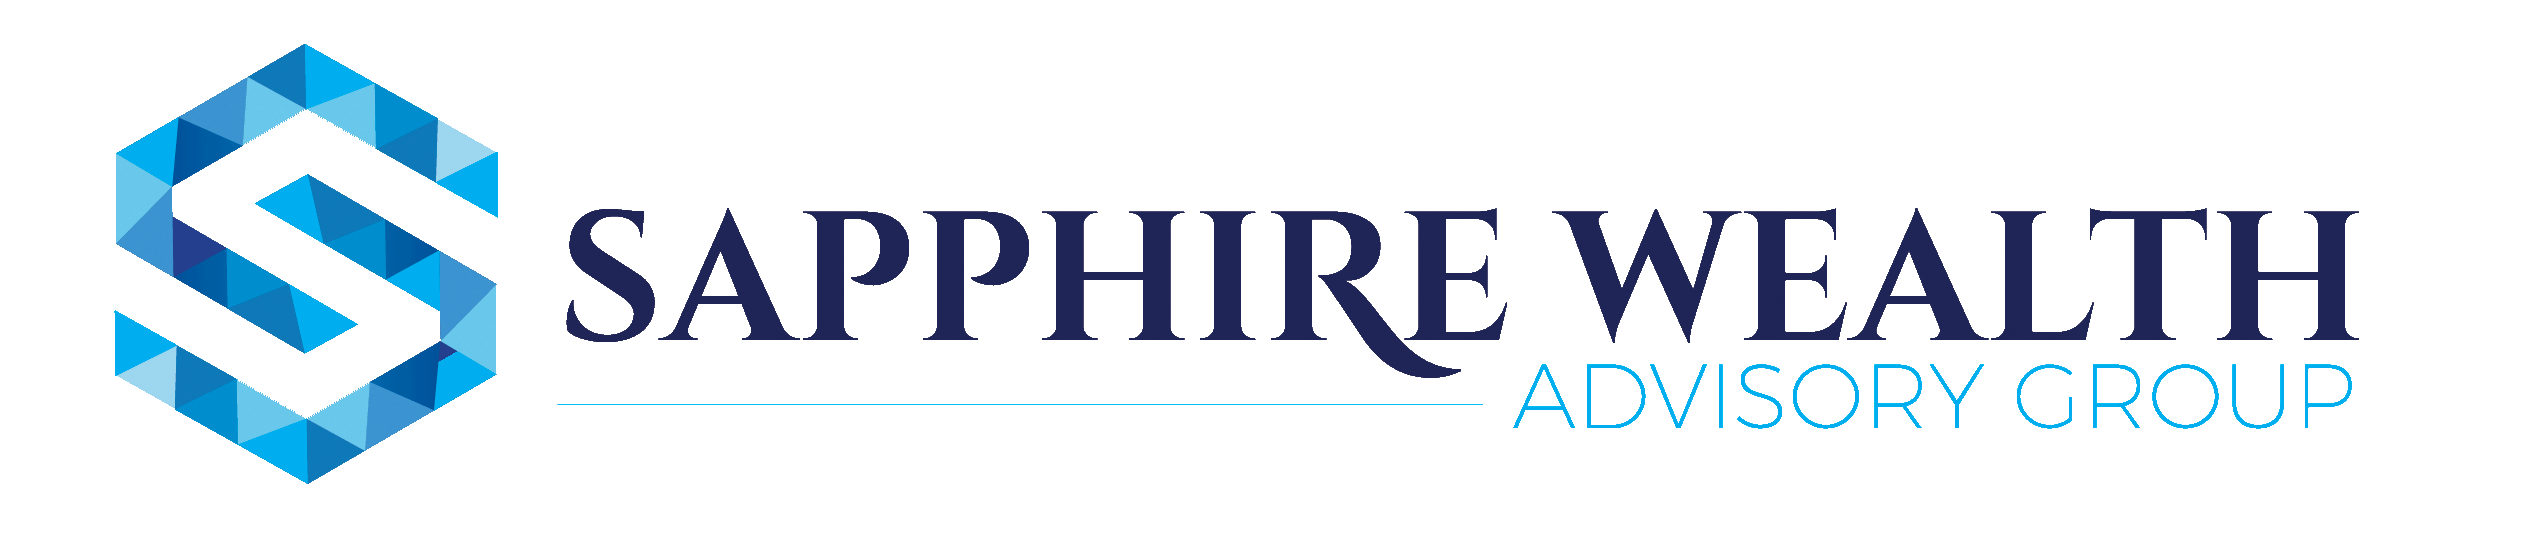 Sapphire Wealth Advisory Group